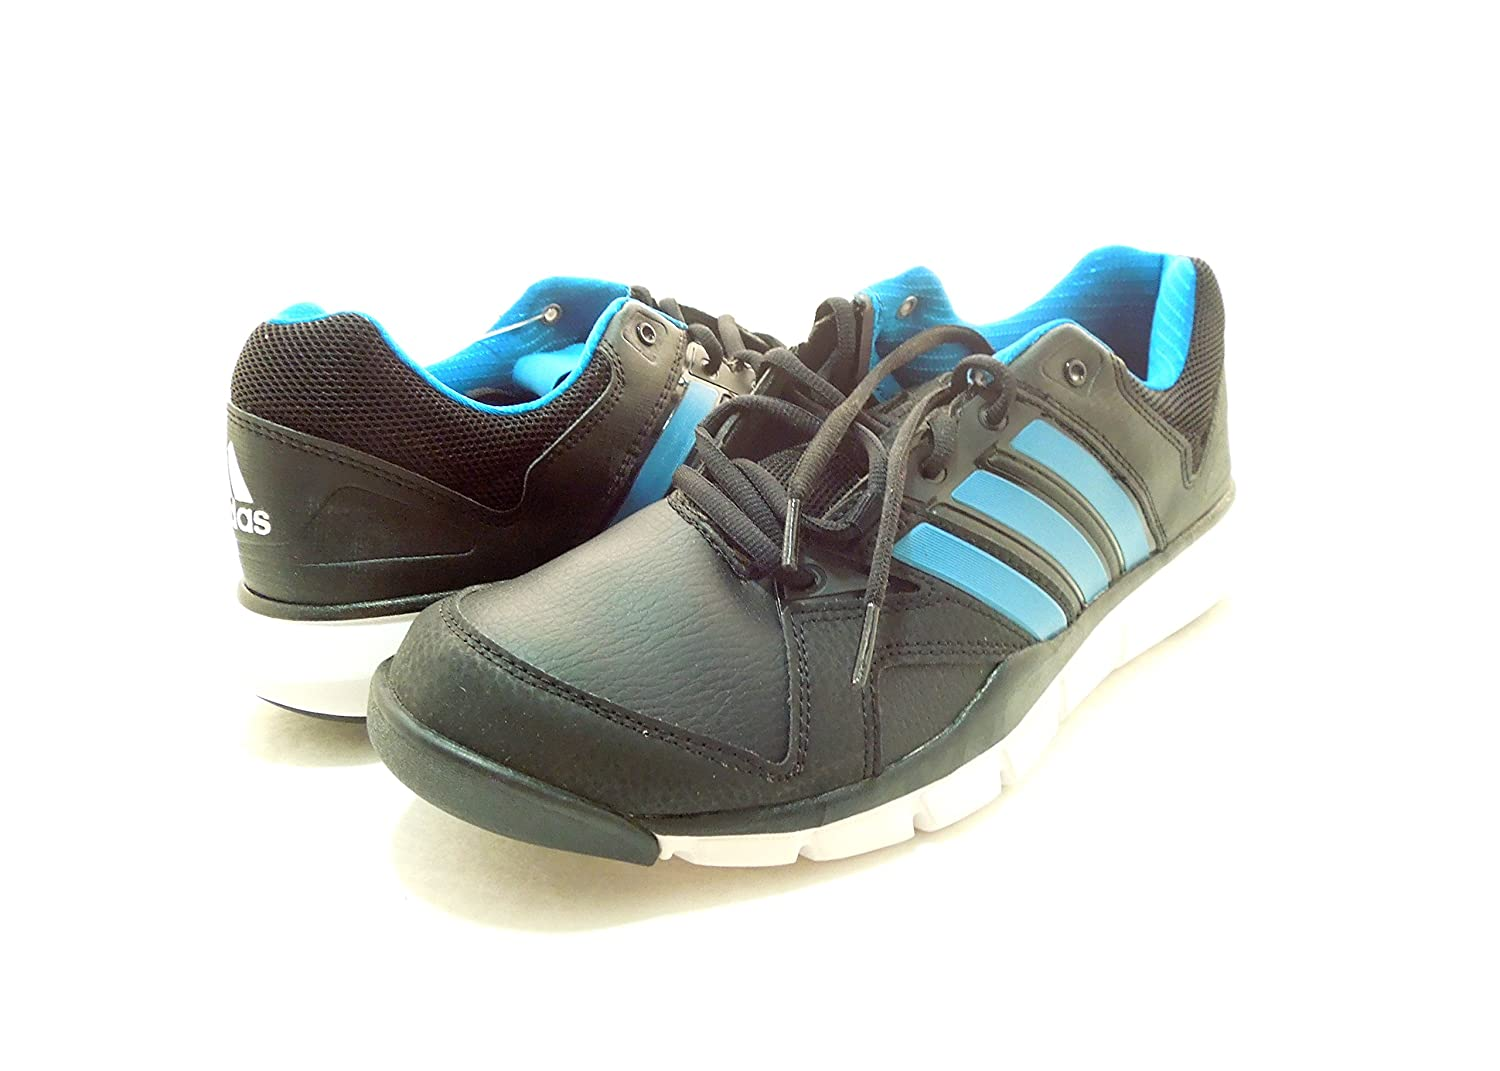 Adidas Mens a.t 180 Running shoes